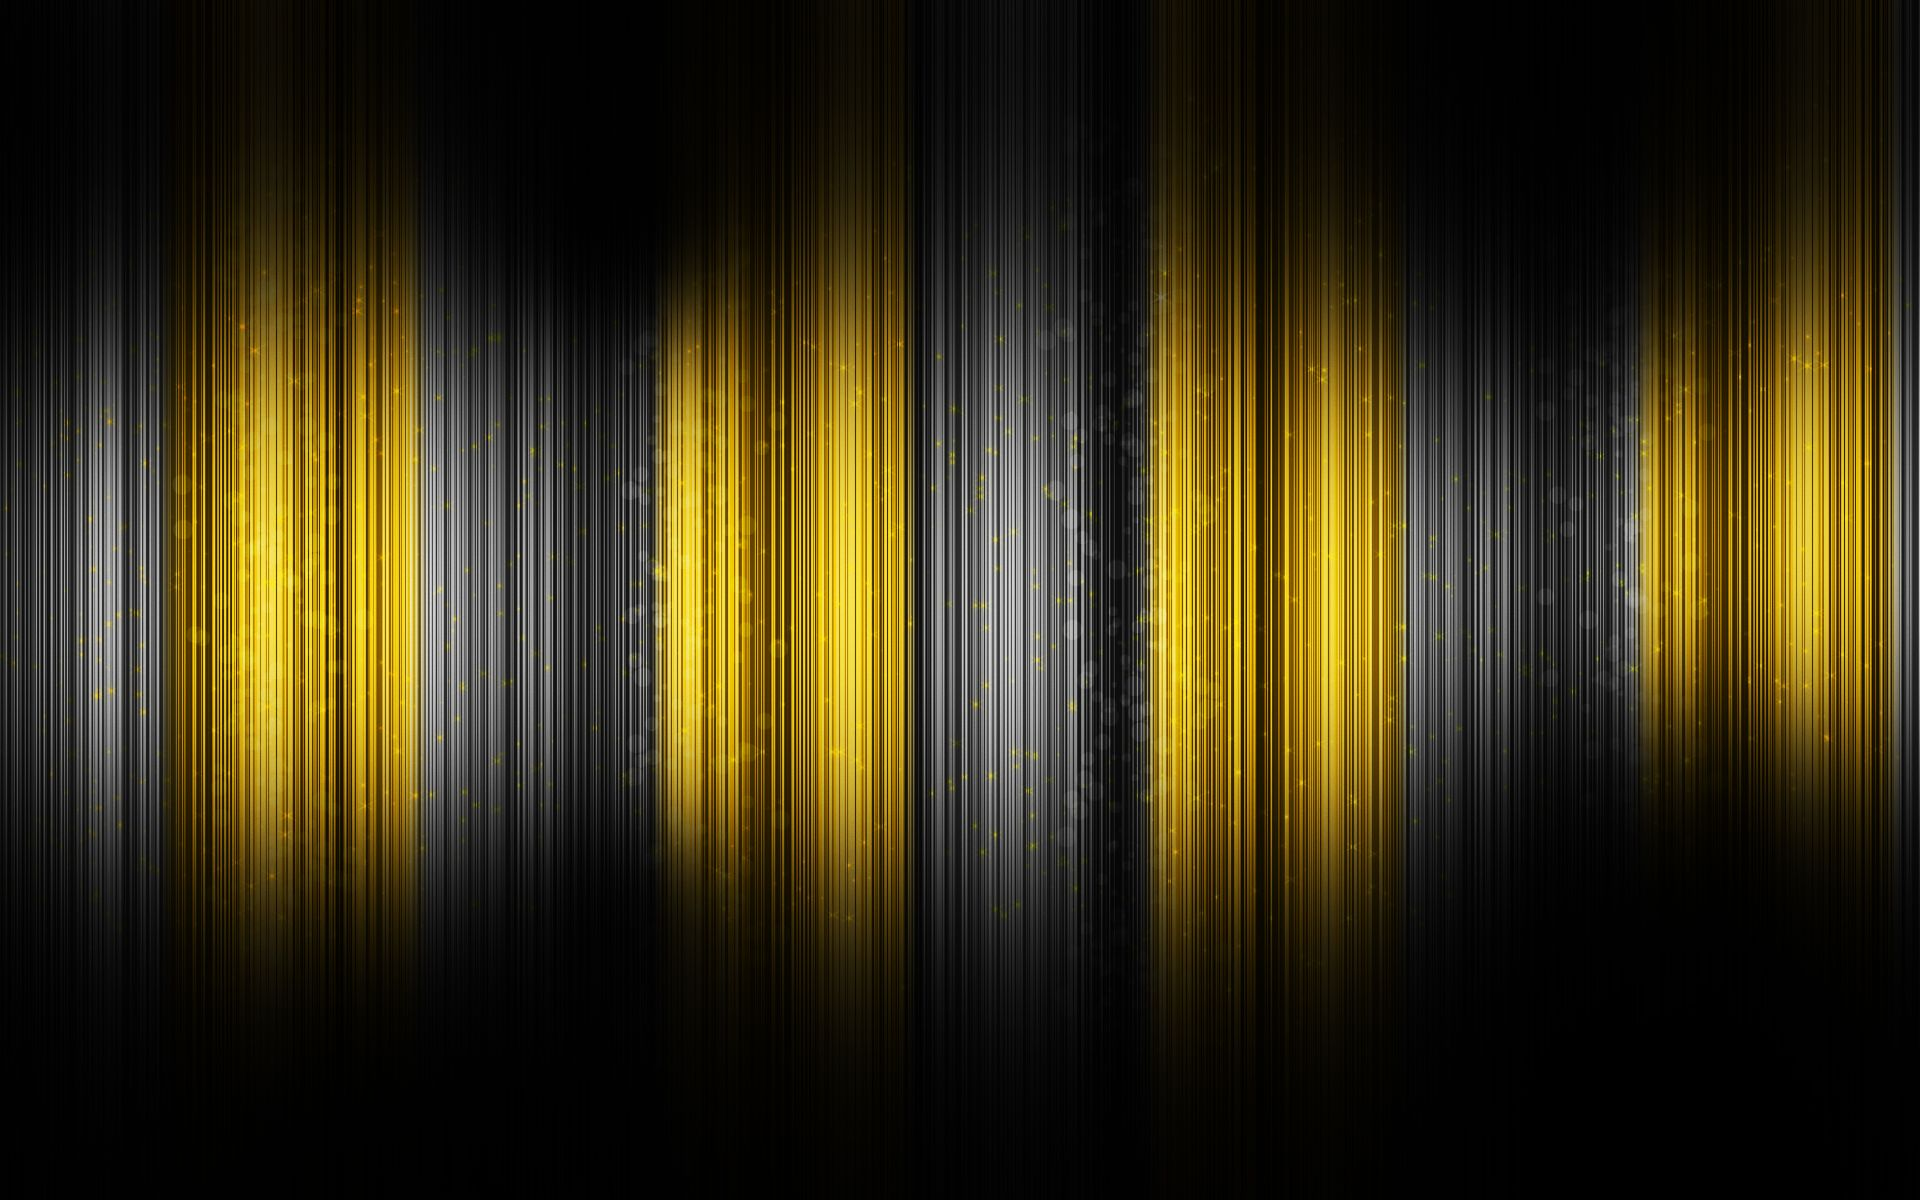 Black And Yellow Abstract Widescreen Desktop Wallpaper Black